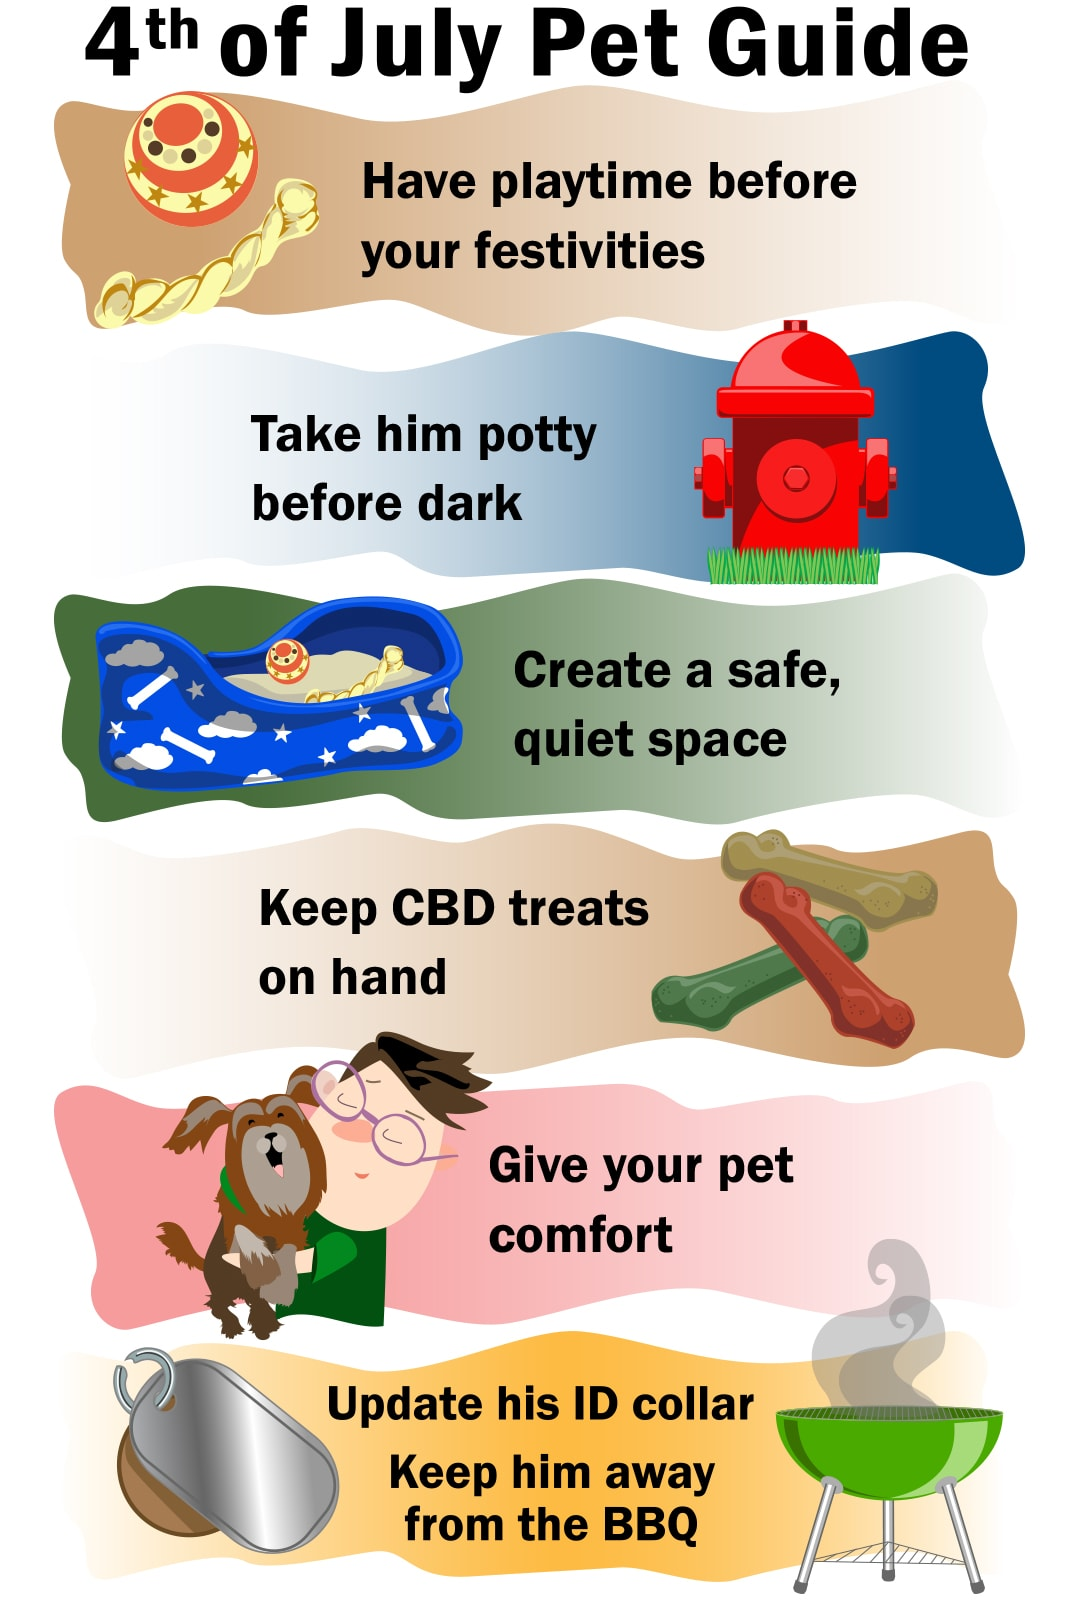 Tips for Pet Safety on the Fourth of July